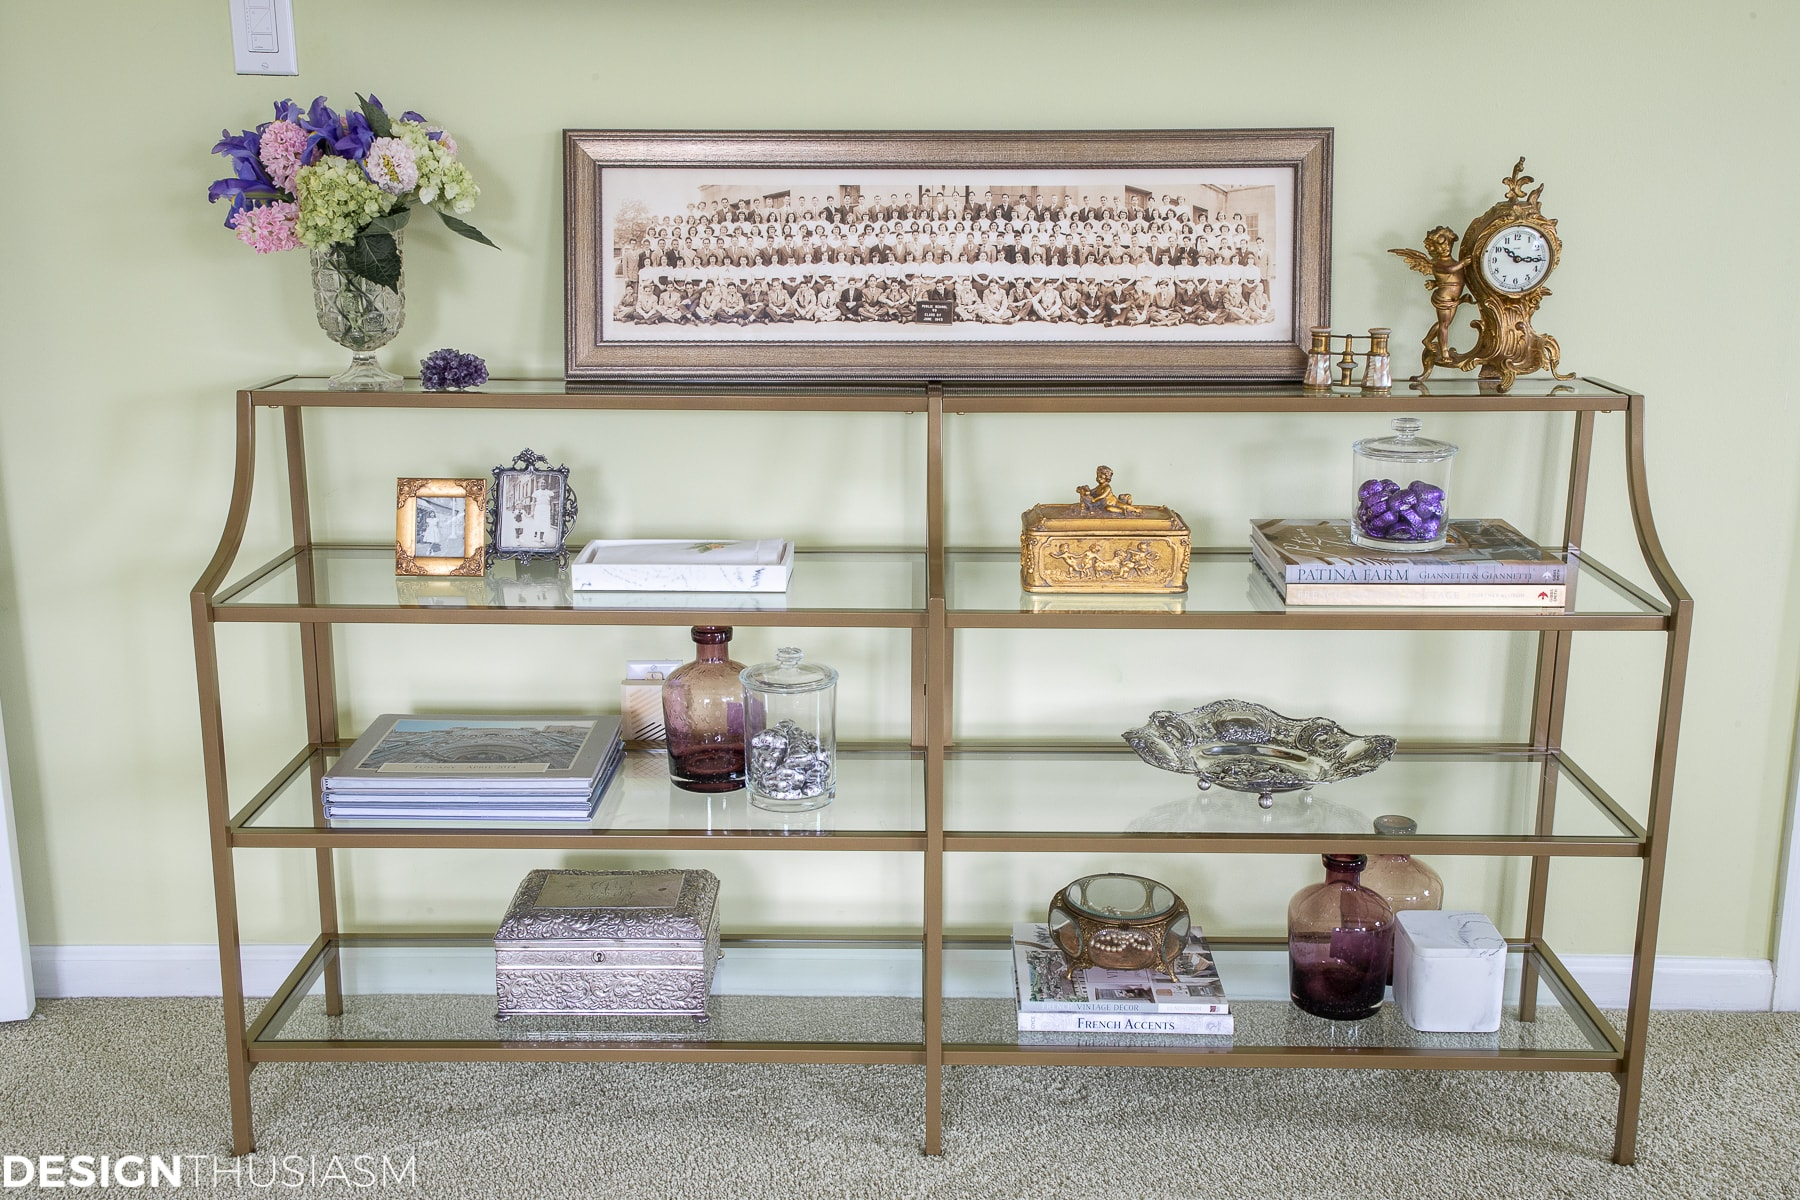 styled shelf unit in the bedroom